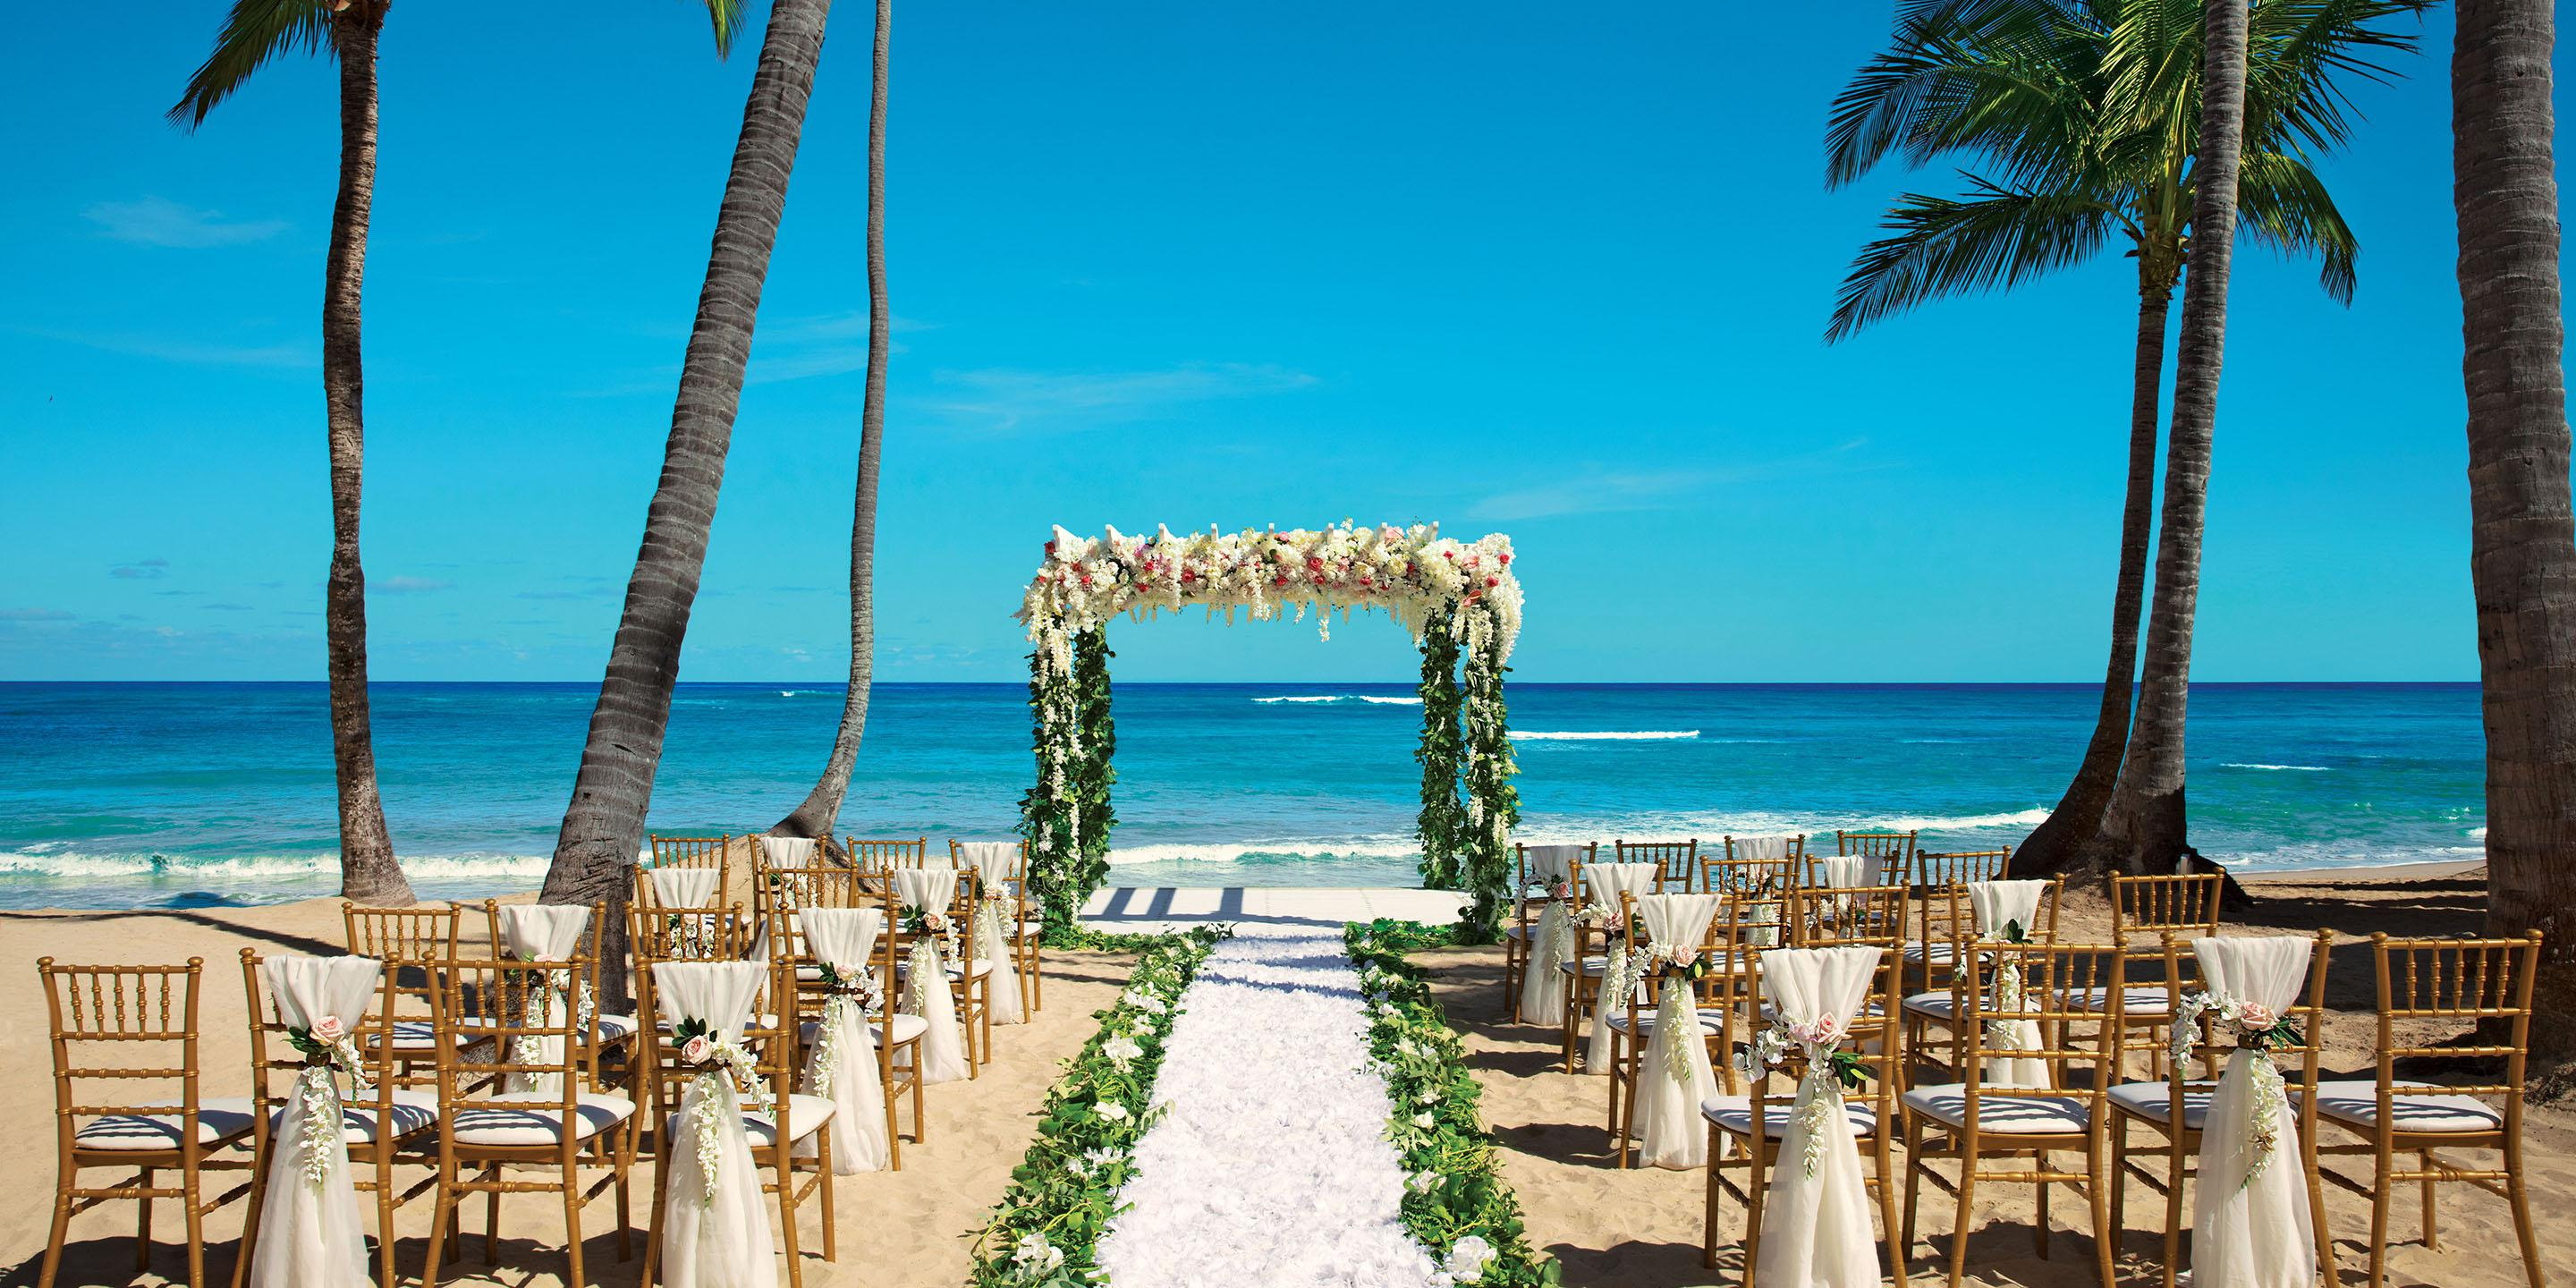 Dreams Punta Cana Resort Spa Venue Punta Cana Price It Out